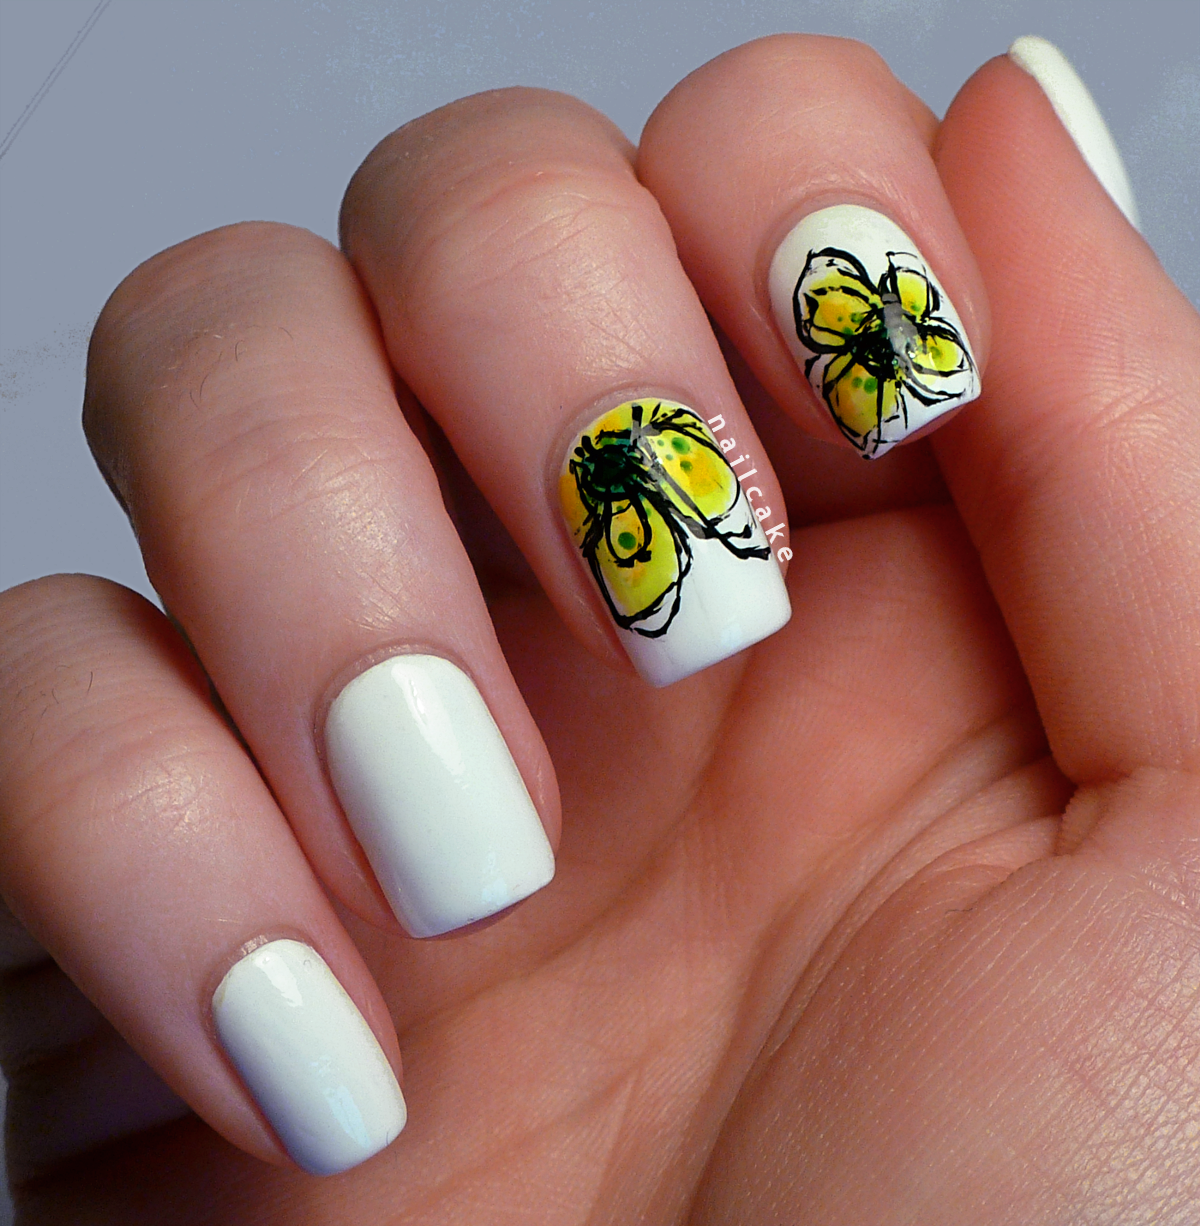 nail art | Hello! Rocking some \'art-inspired\' nail art right now ...